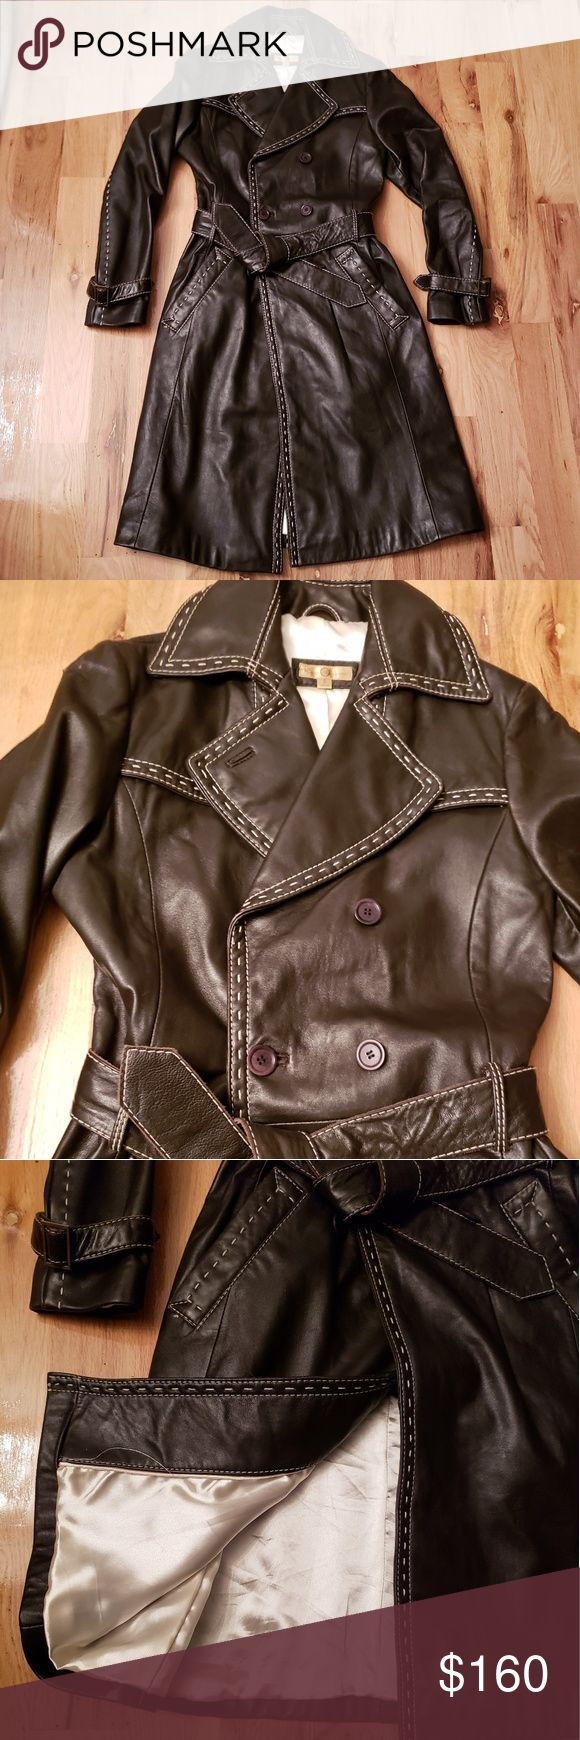 NWOT Wilson's Leather Chocolate Brown Trench Coat